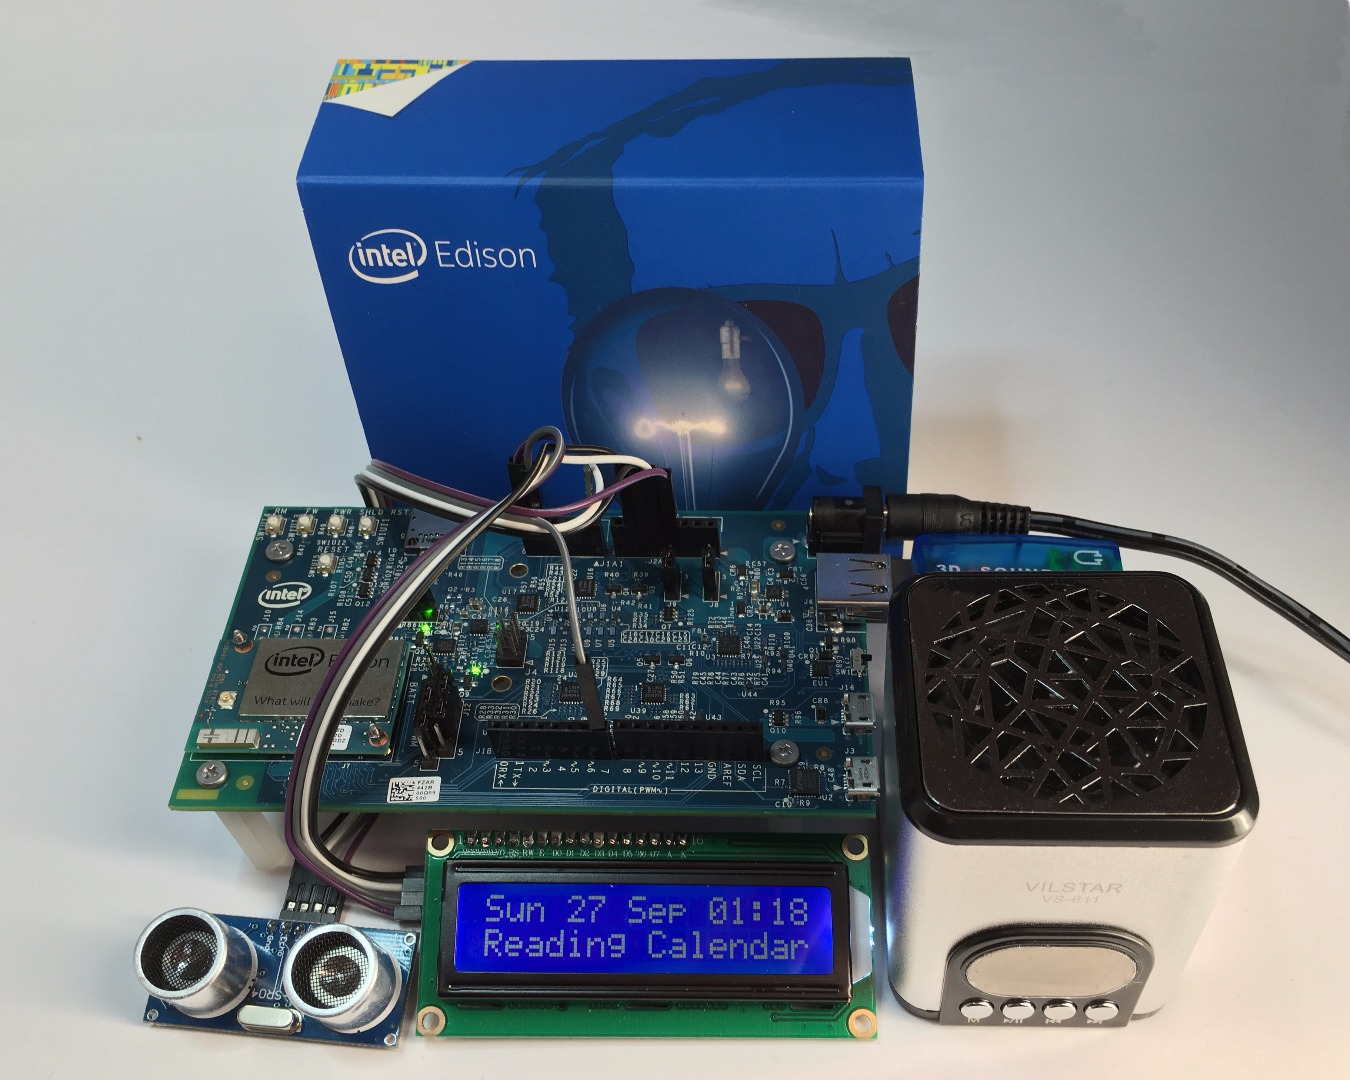 Picture of Intel Edison, Proximity Activated, Speaking Calendar